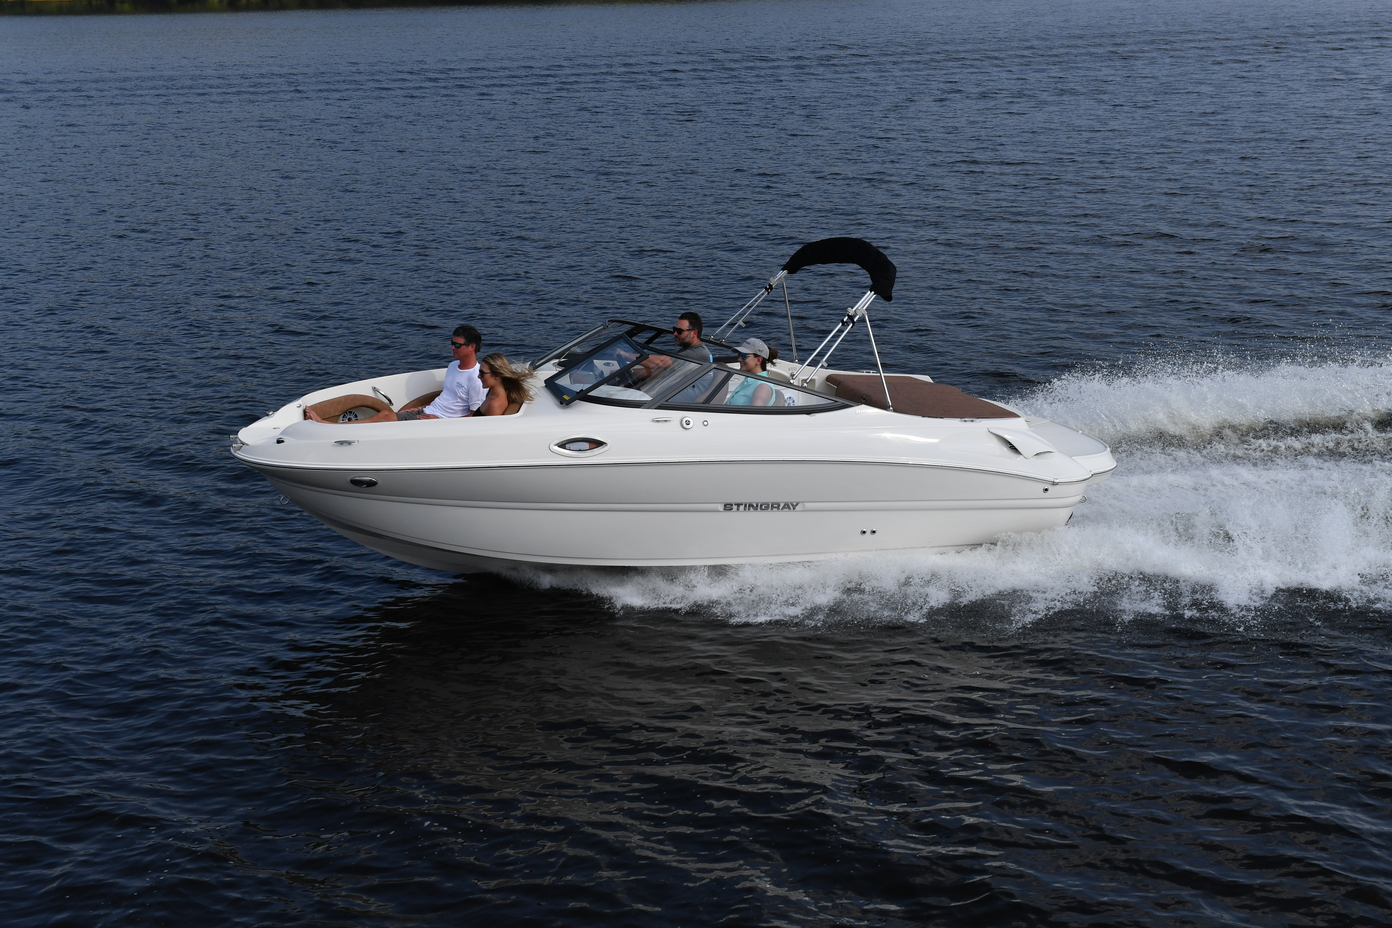 Stingray Boats – Making Families Smile, One Boat At A Time